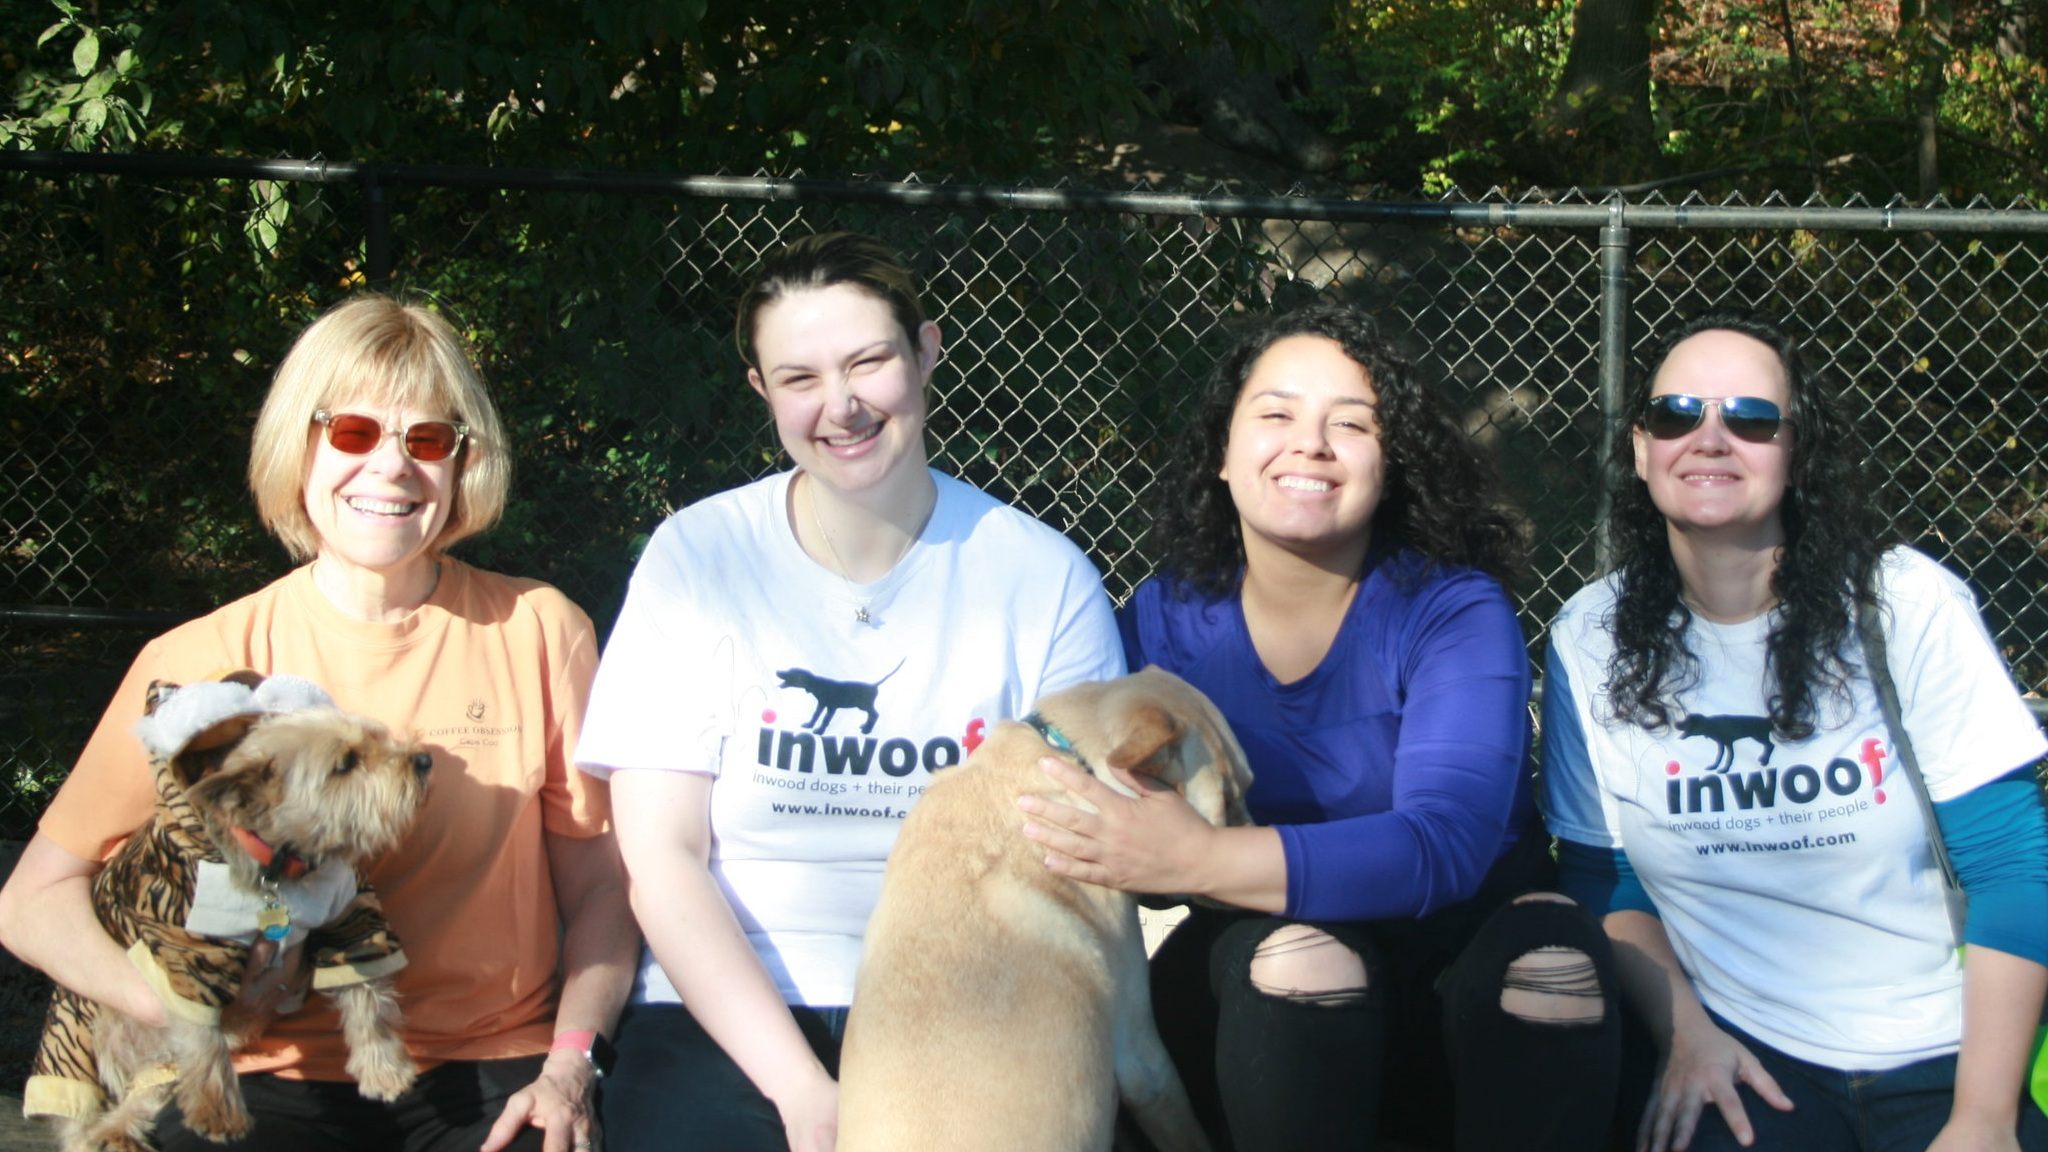 Current and former Inwoof officers at the 2017 Howl-O-Ween event. From left to right: Rebecca Klein (Treasurer), Larissa McDowell (former Vice President), Lisette Guillermo (former Parks Liason), Valerie Fullarton (President)